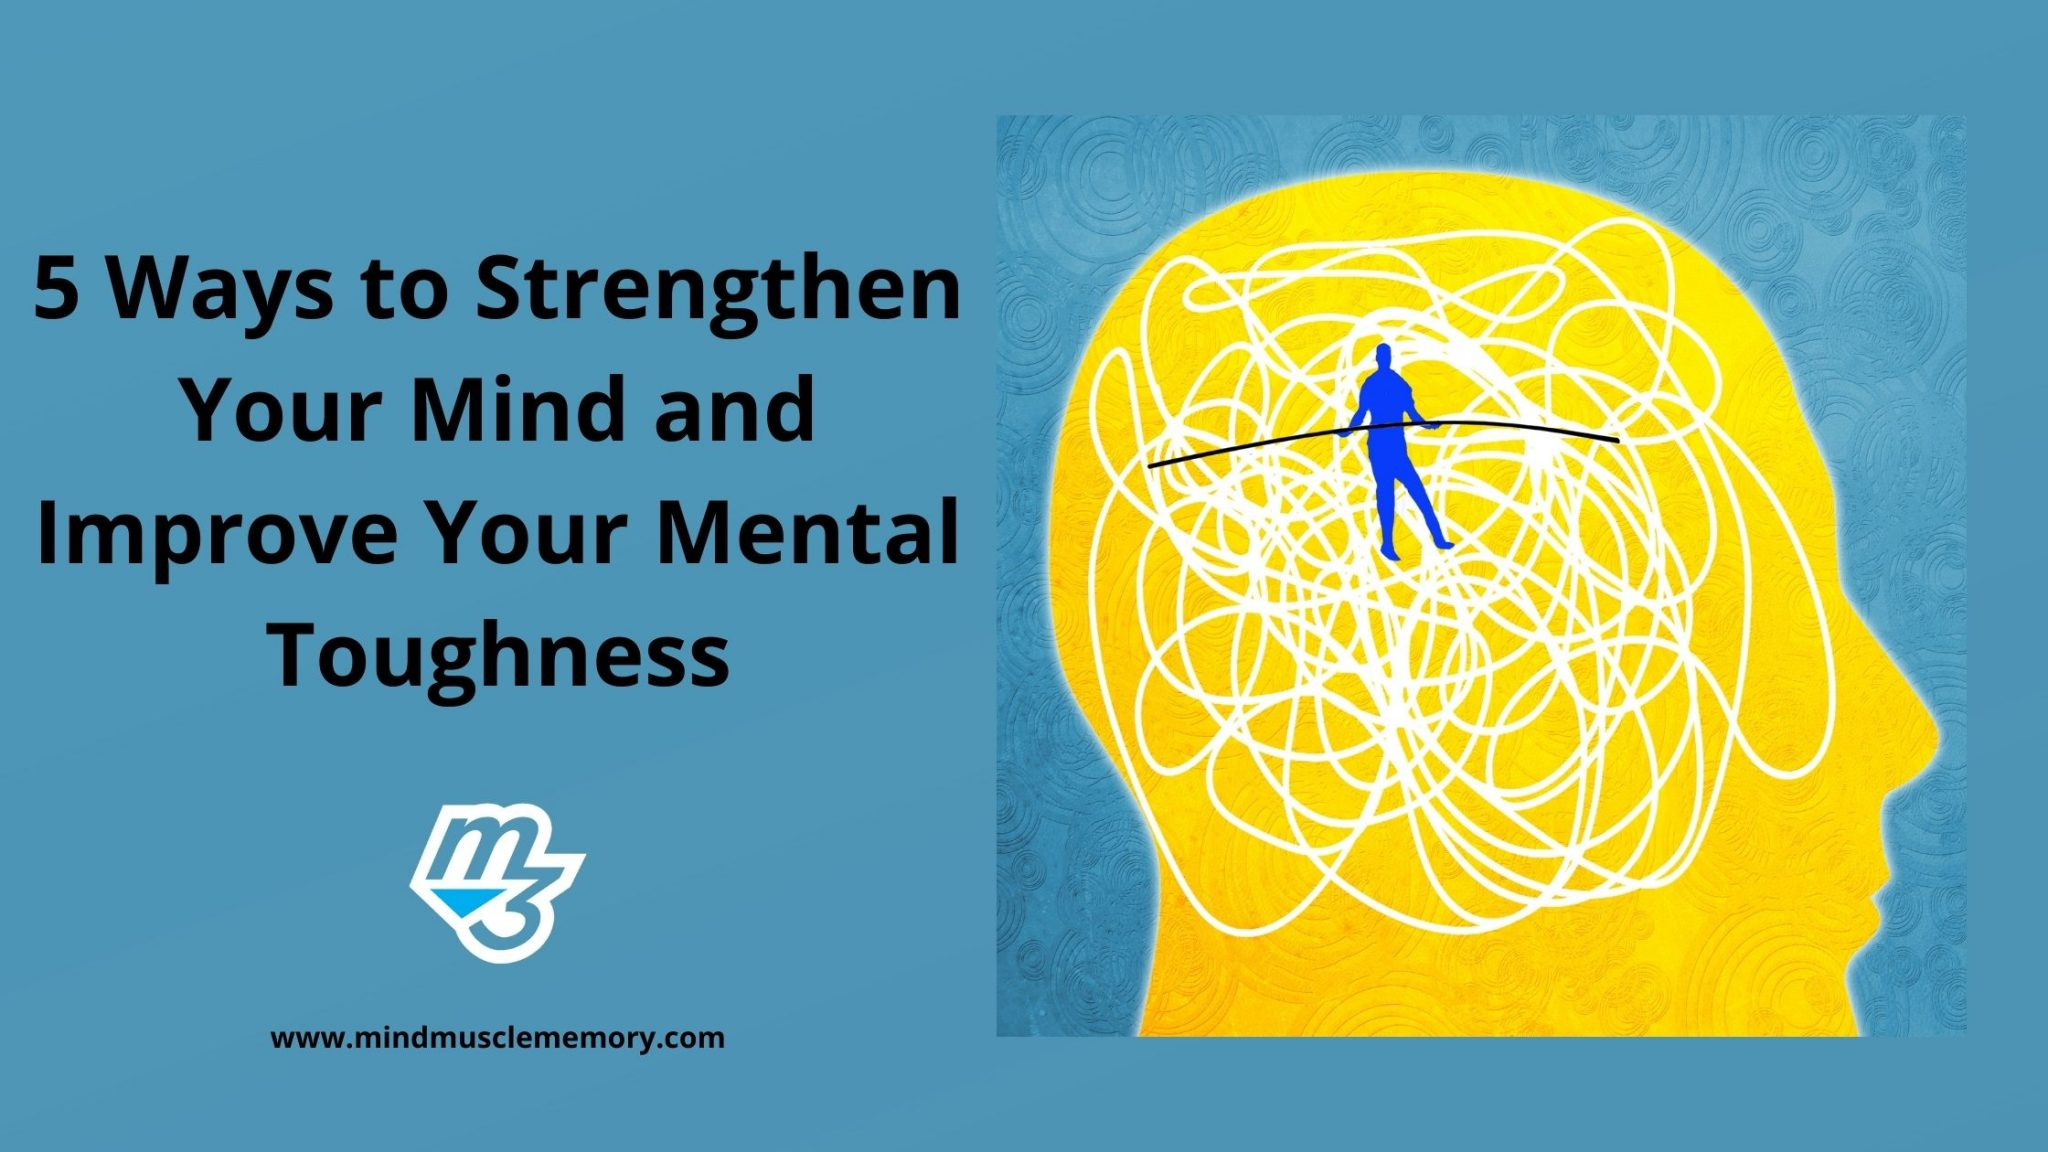 5 Ways to Strengthen Your Mind and Improve Your Mental Toughness with Mind Muscle Memory scaled Home